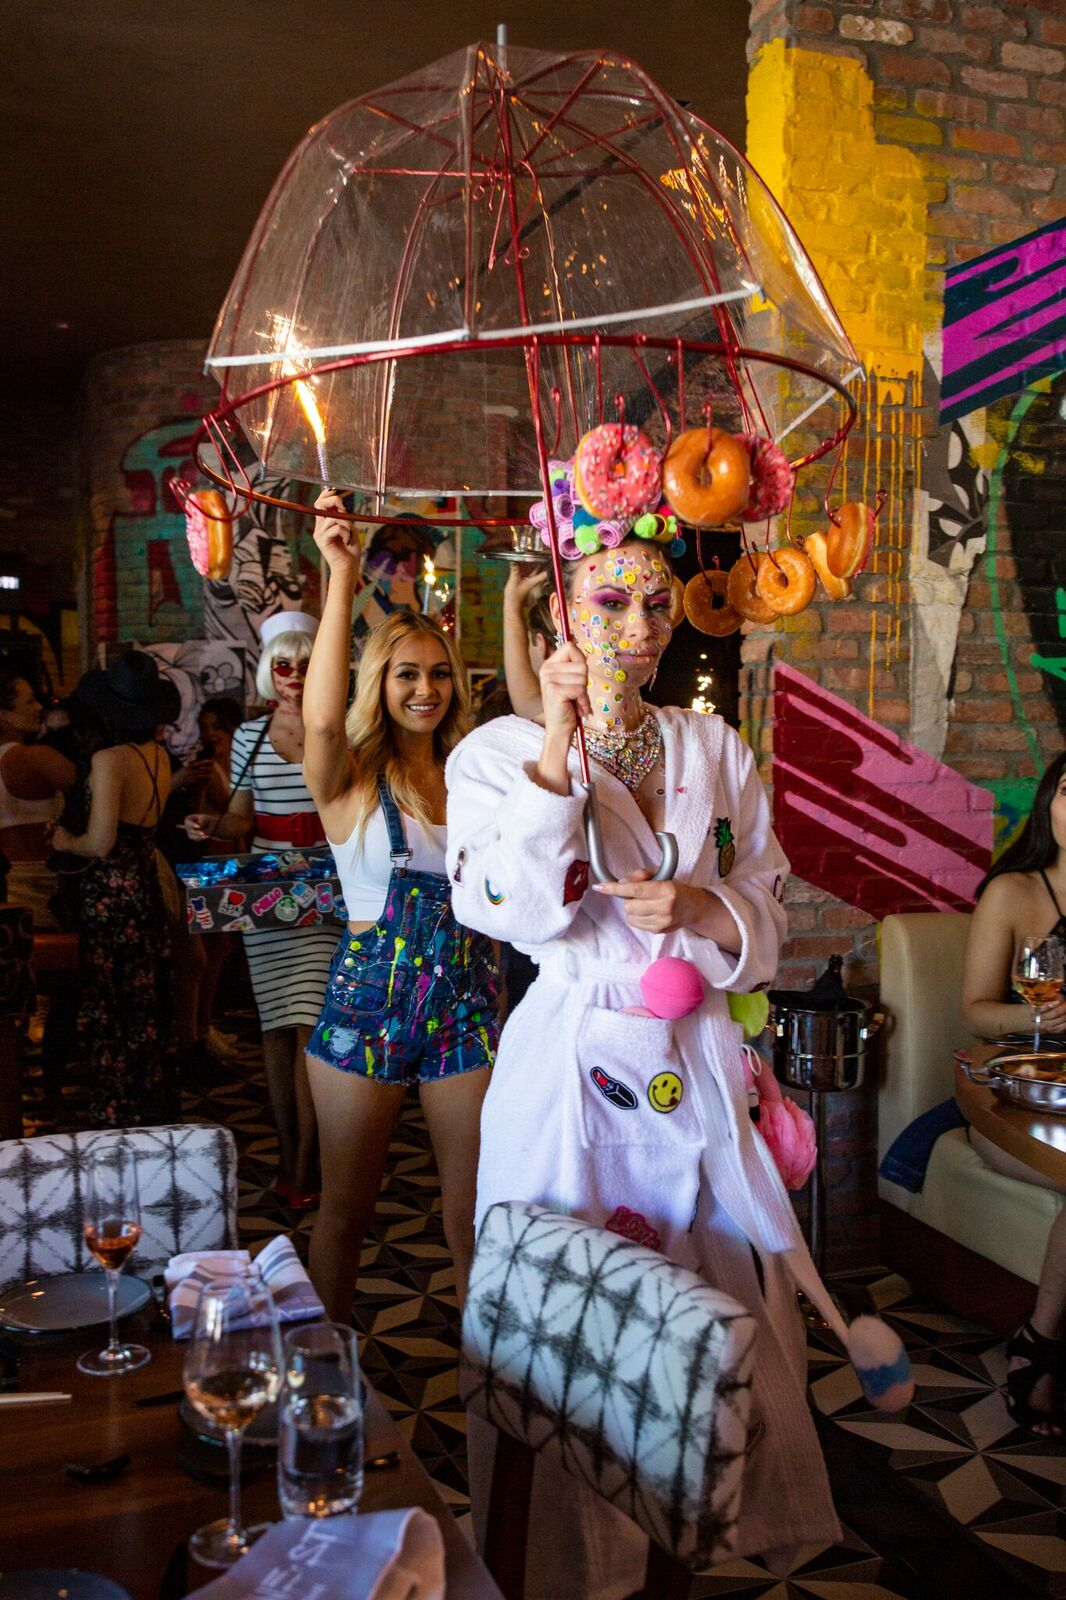 BRUNCH'N Waitresses in Costume with Donut Umbrella at Greene Street Kitchen